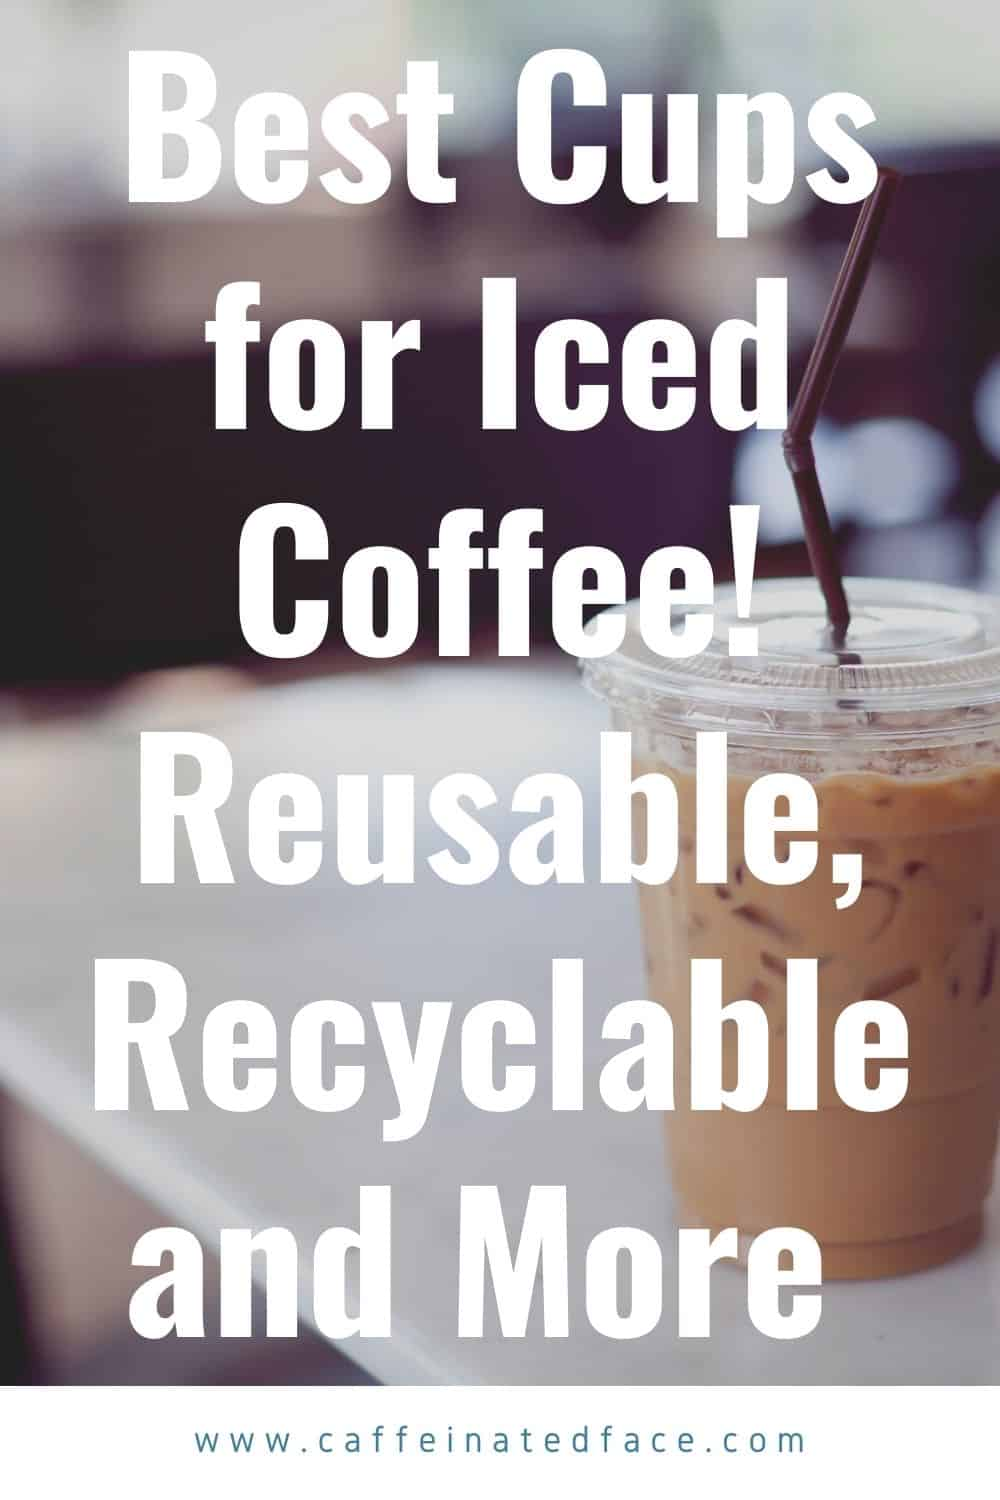 best cups for iced coffee